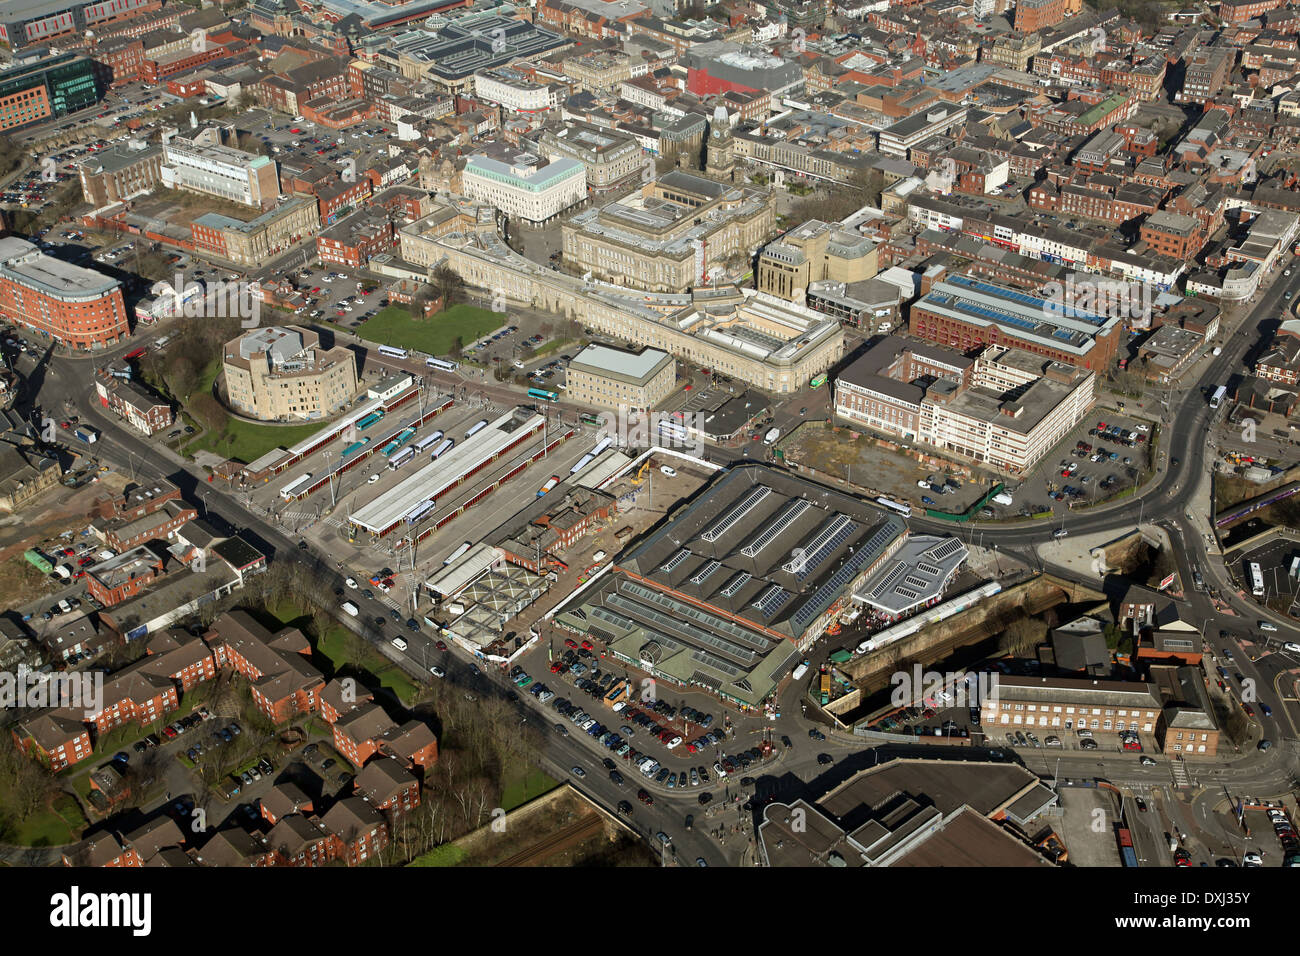 aerial view of Bolton including the town centre, bus station, markets and Town Hall - Stock Image